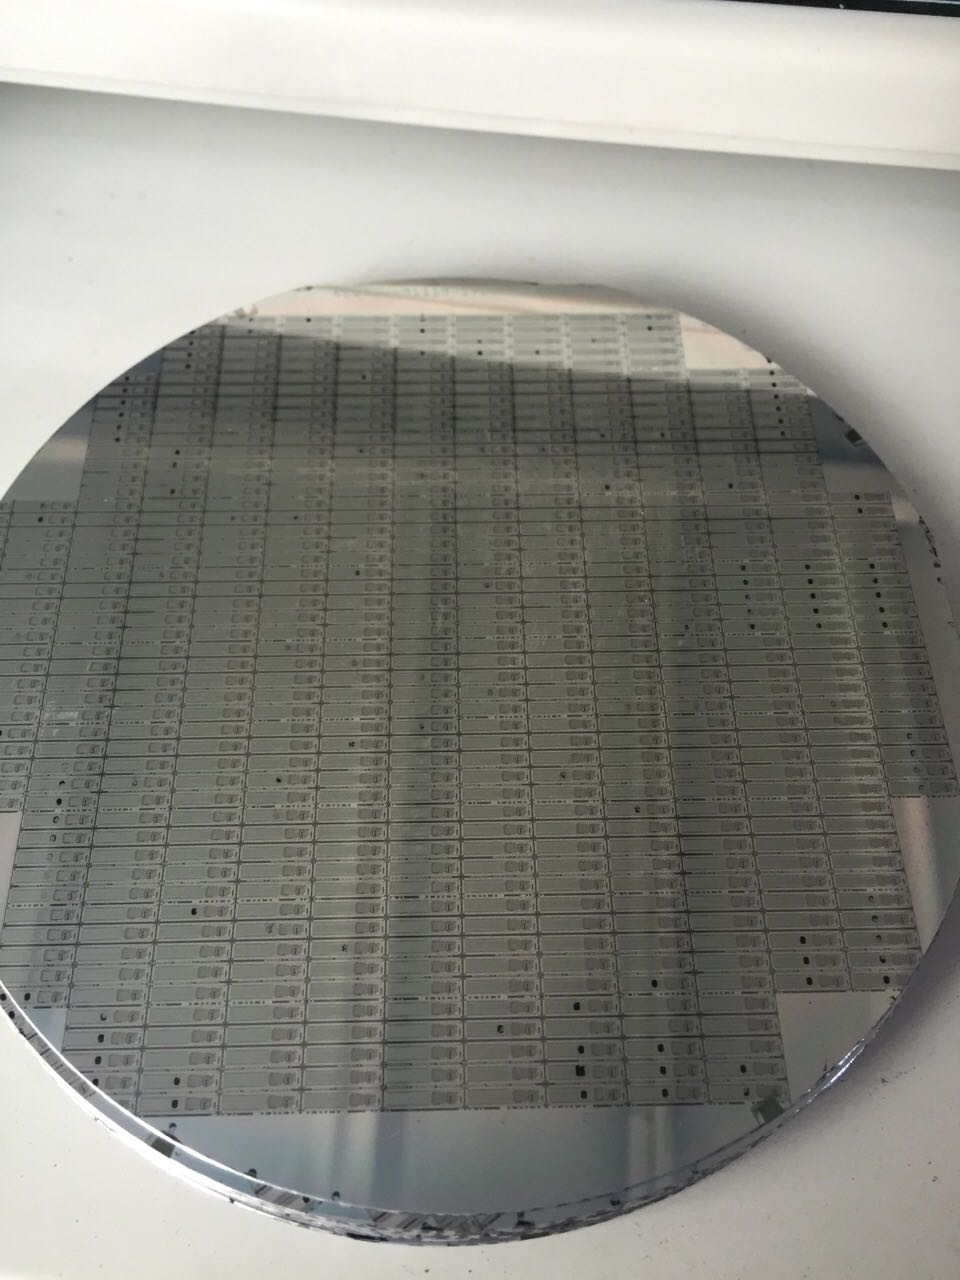 Full New 4 Inch Circuit Silicon Lithography Wafer Semiconductor Wafer Photolithography Exhibition Exhibits